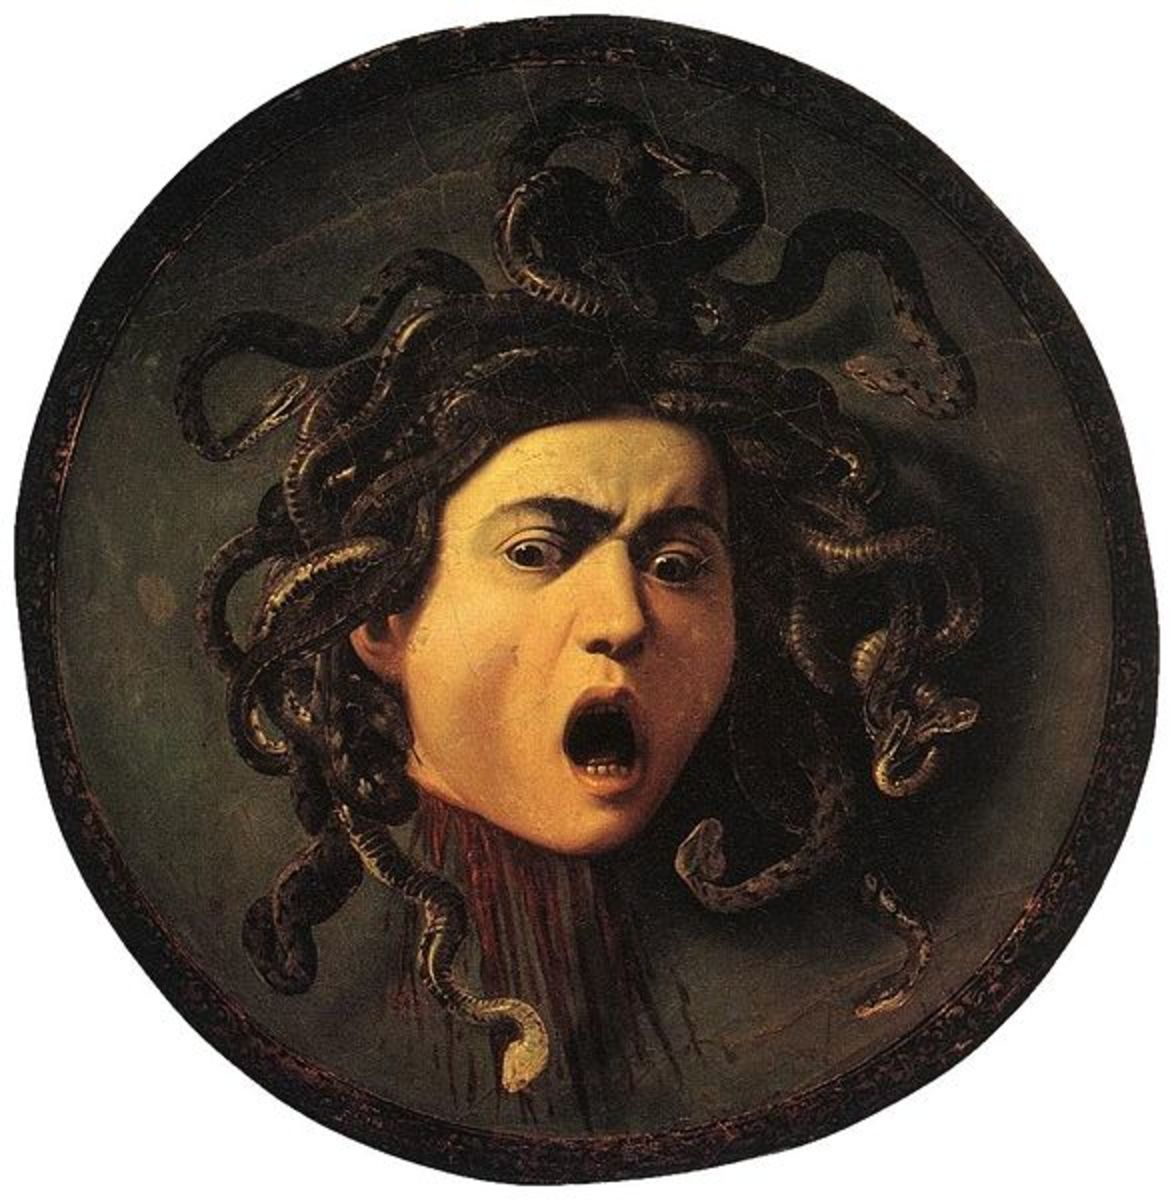 Medusa in Greek Mythology